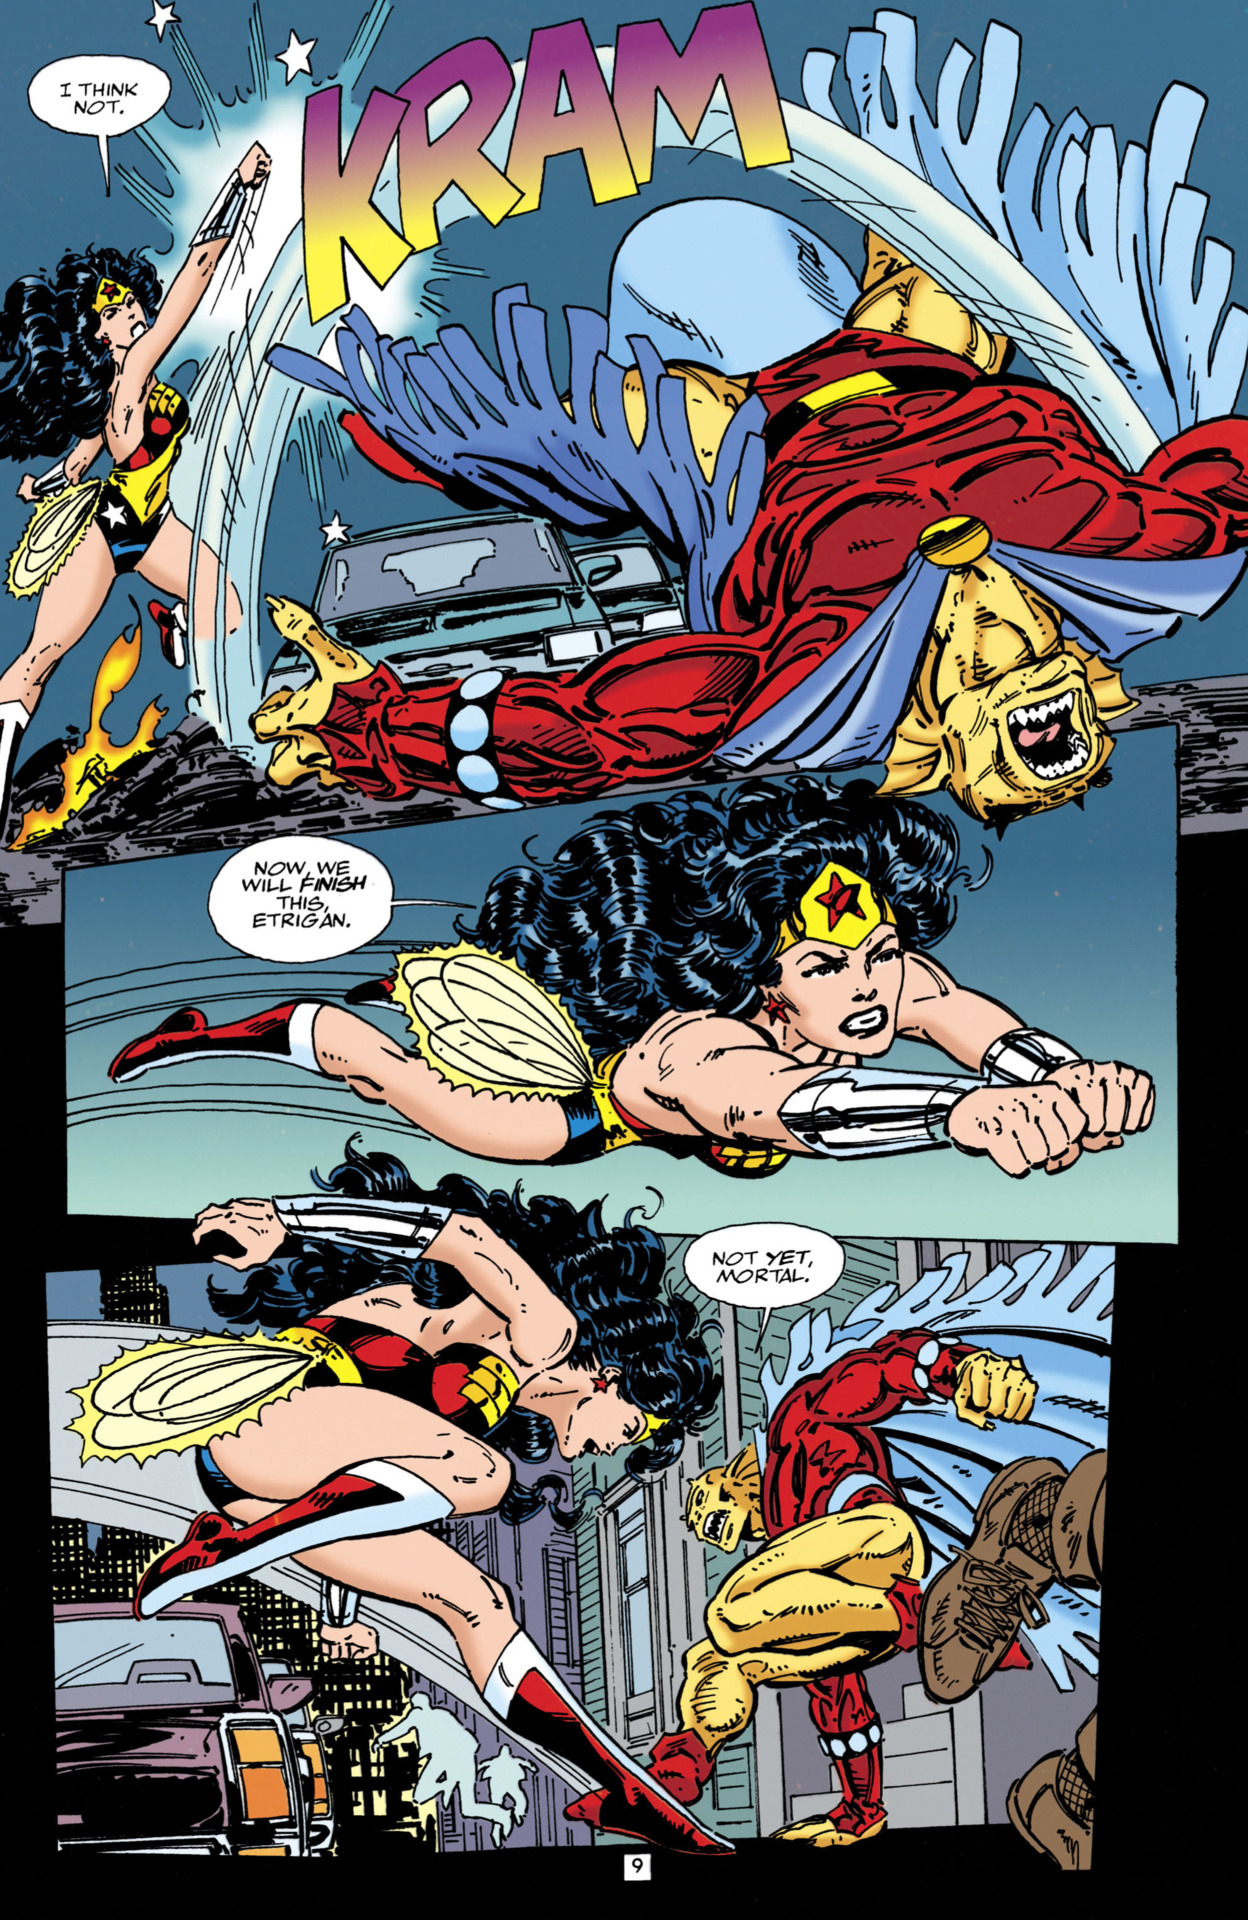 Etrigan takes another punch from Wonder Woman here and quickly recovers